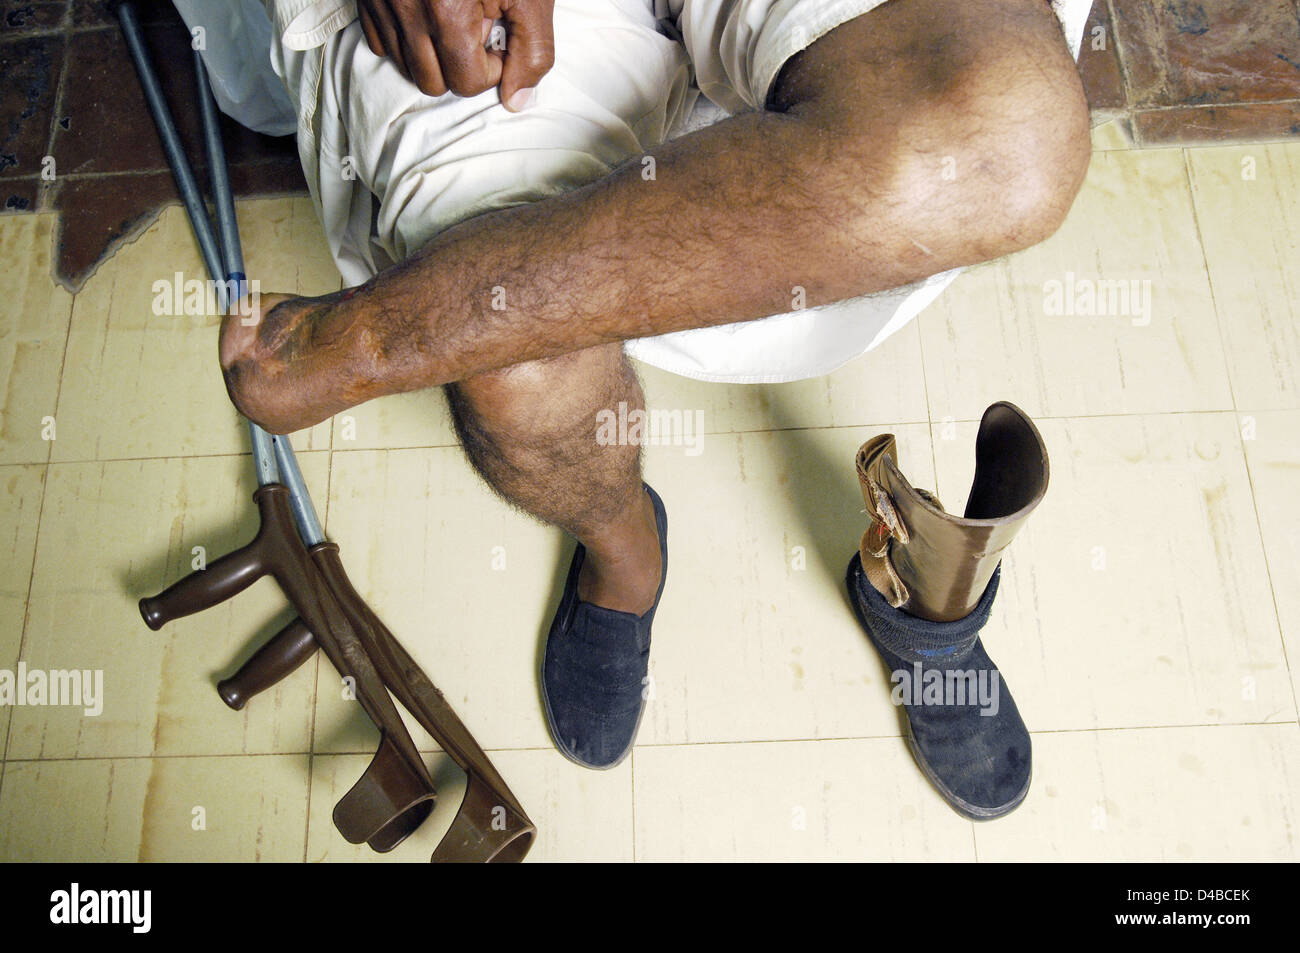 Young man with left foot which was amputated due to Mycetoma - Bacteria and fungal disease associated with farming - Stock Image